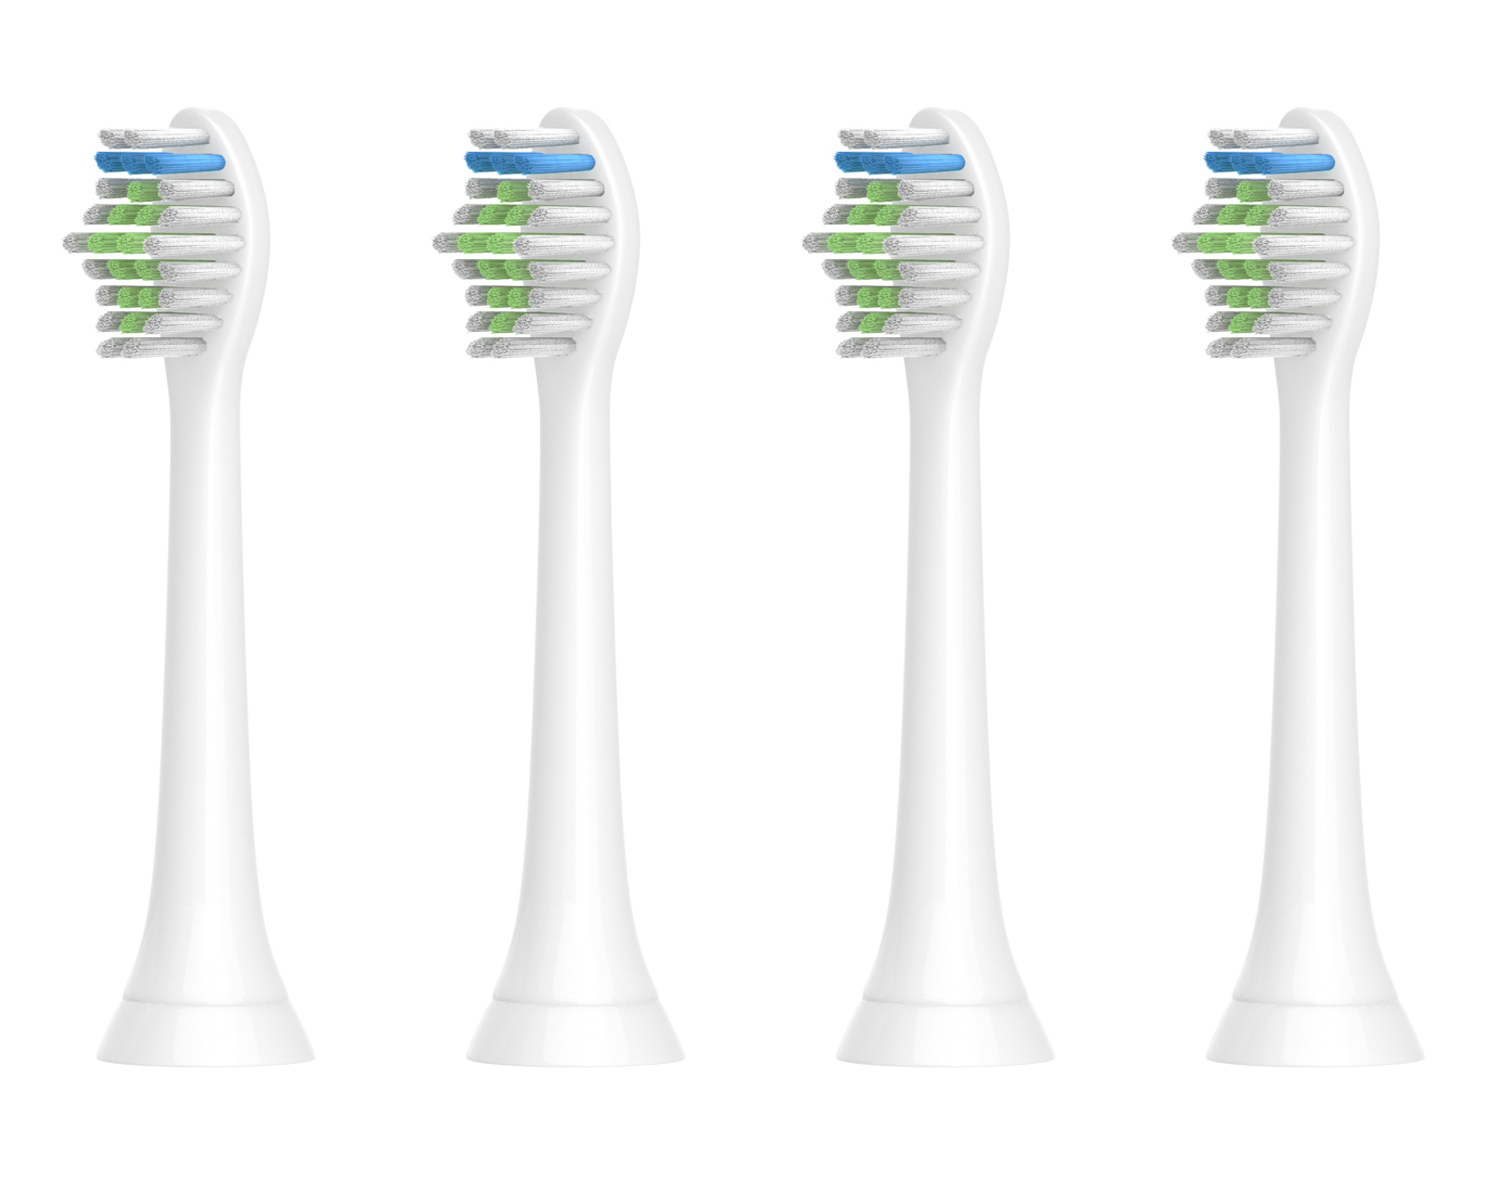 4Pcs/lot TOOTH BRUSH HEADS For PHILIPS Sonicare FlexCare Diamond Clean HX6100 HX6912 HX6930 HX6932 HX6932 HX6932 HX6933 HX6942